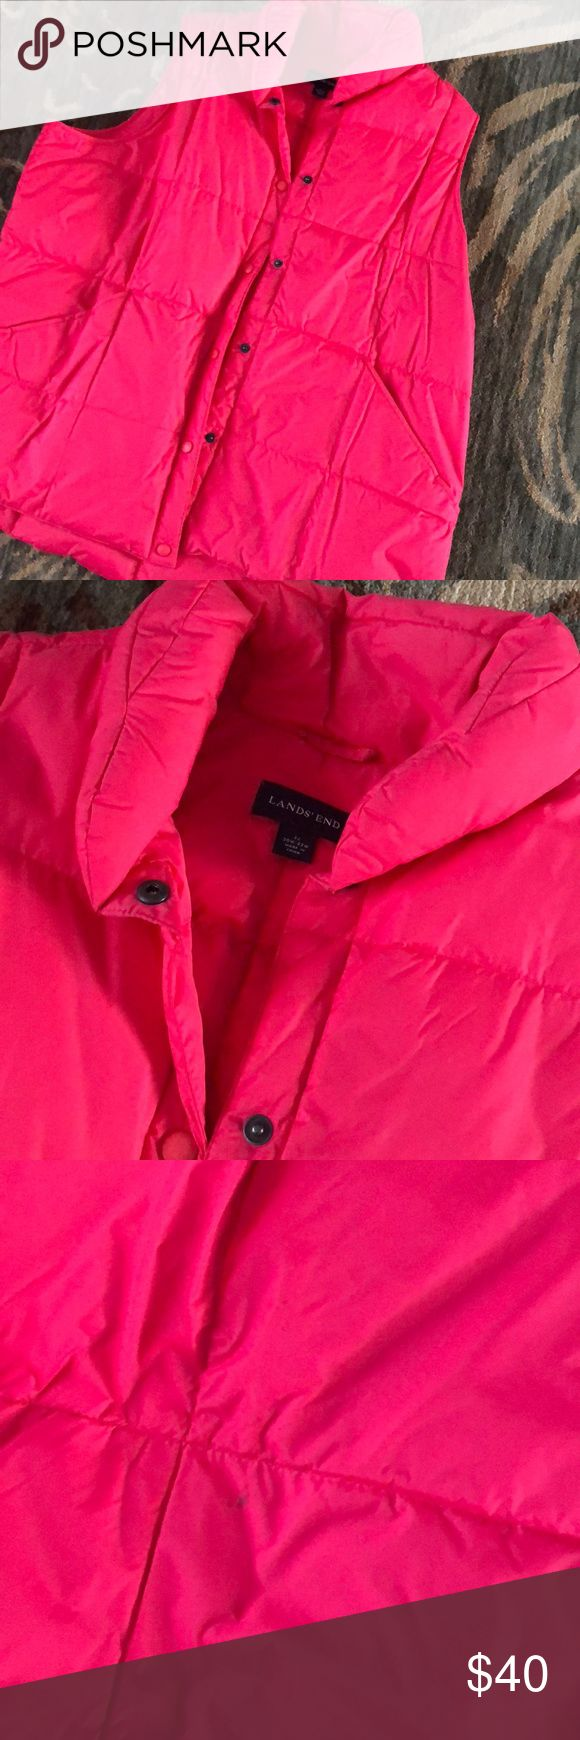 Lands end 2x hot pink vest Worn very little. Down vest. Small stain on the back. Noted in photo. May wash out. Lands' End Jackets & Coats Vests